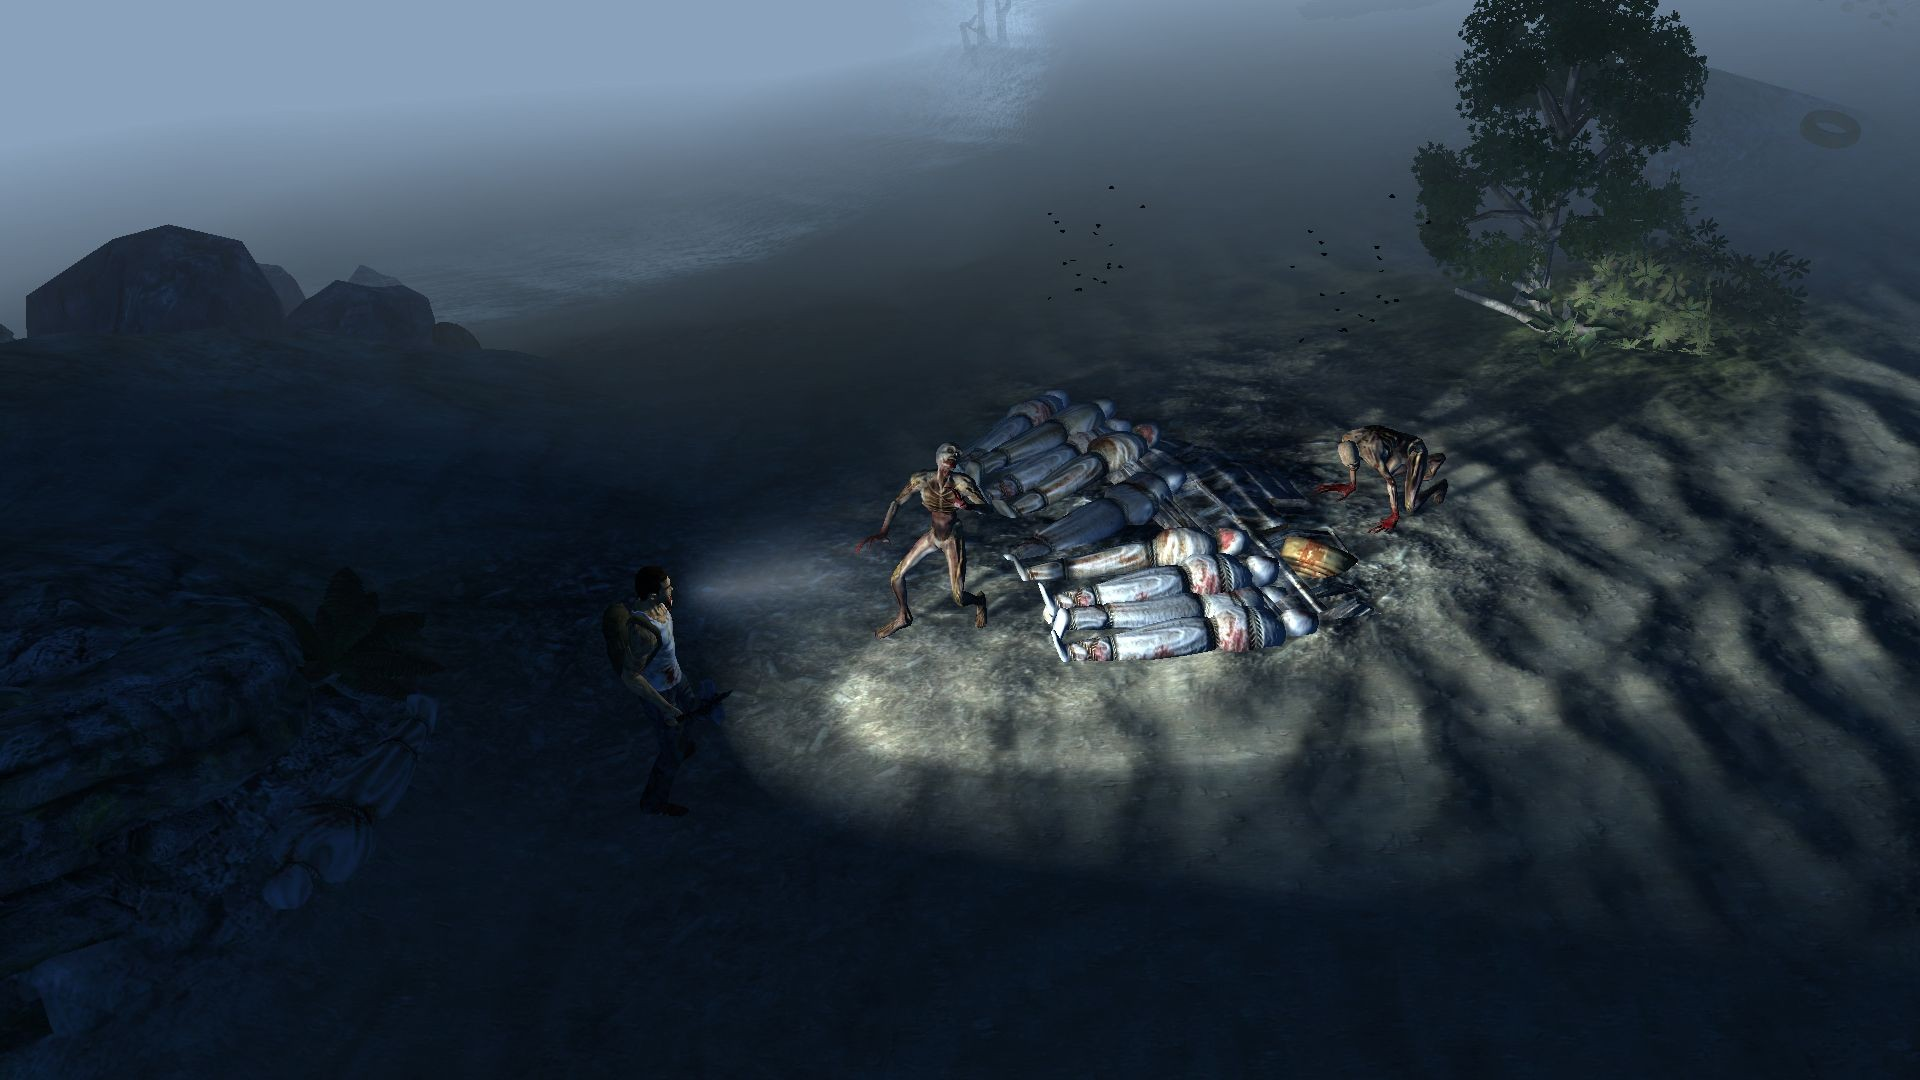 11181-how-to-survive-88-1384319504